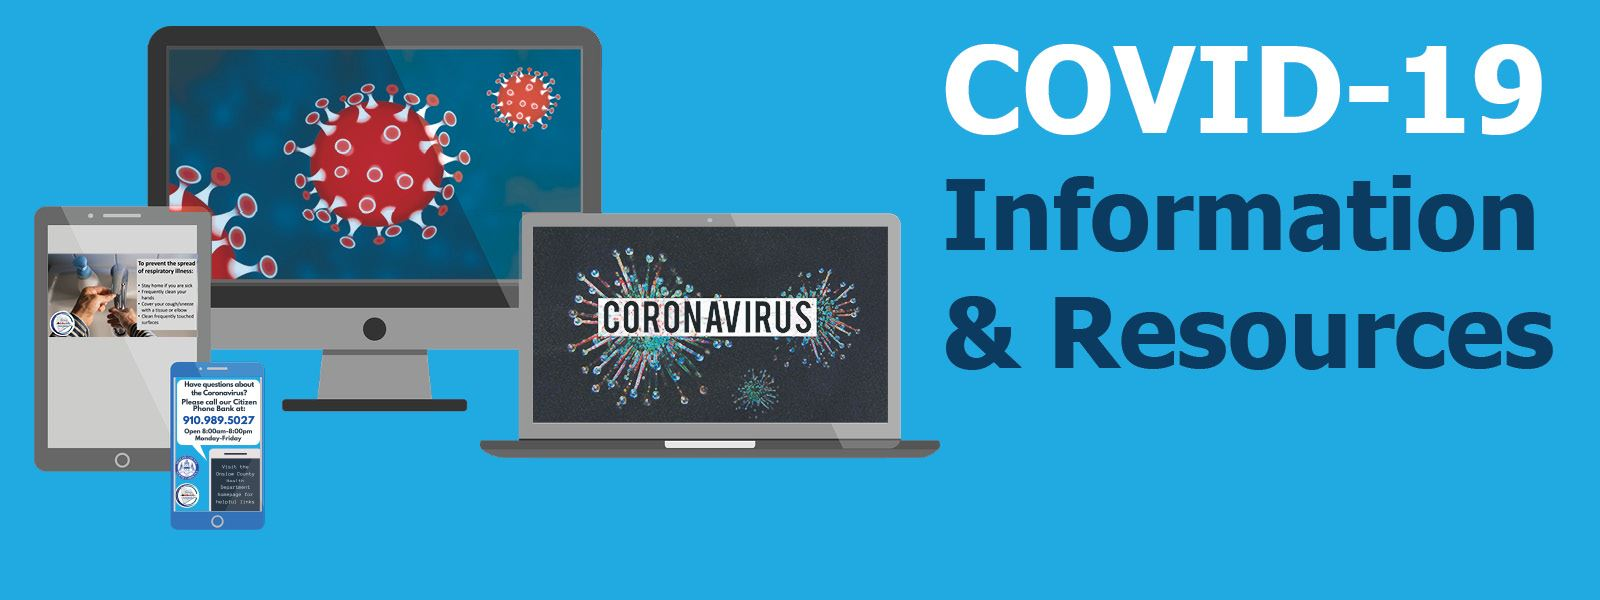 Coronavirus Disease 2019 (COVID-19) Information and Resources